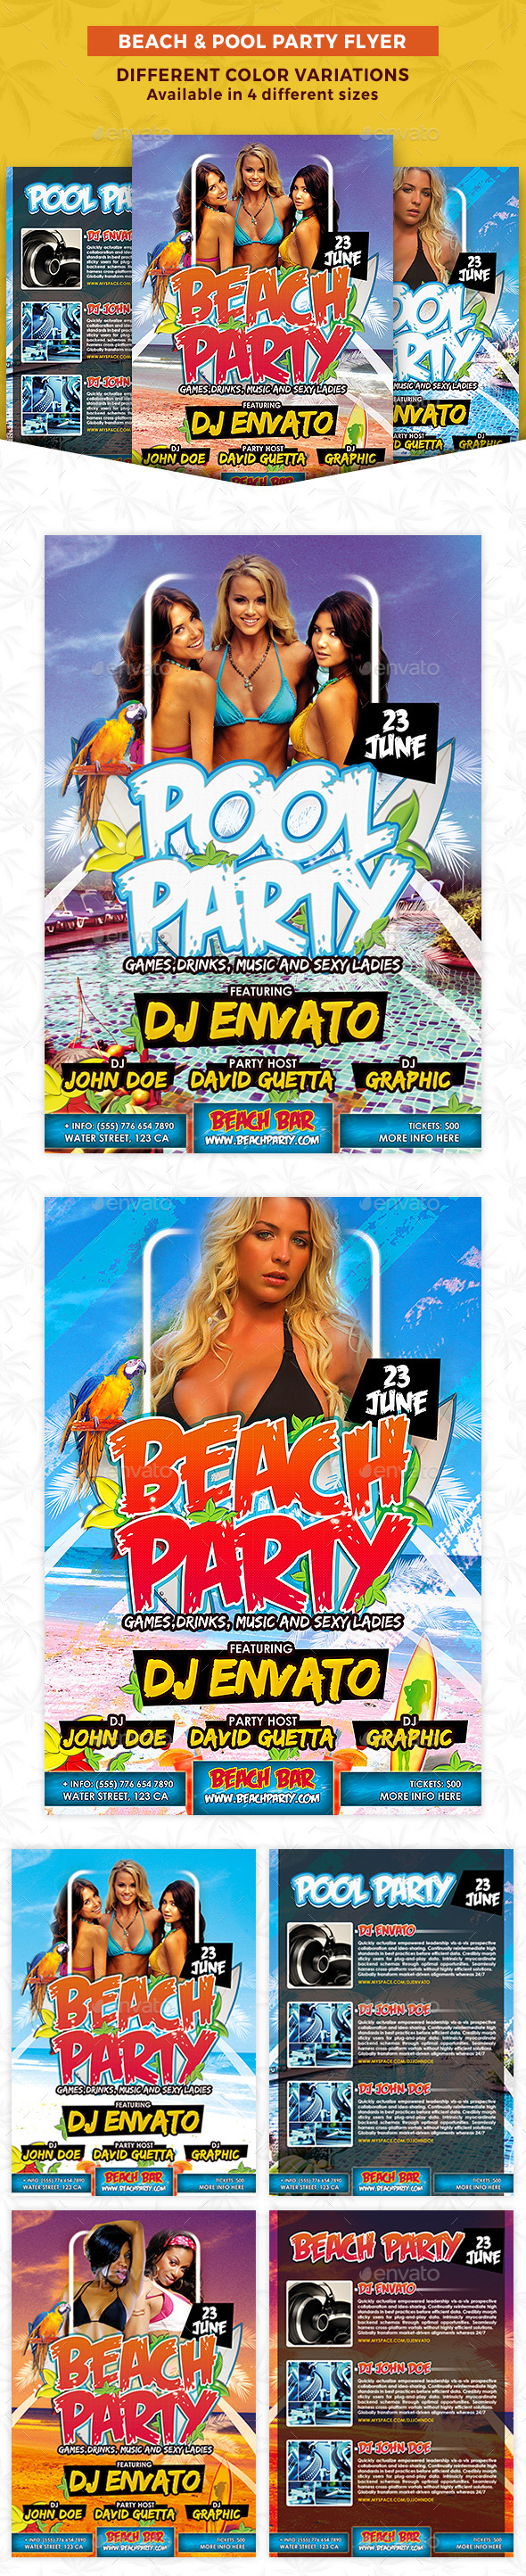 Beach & Pool Party Flyer - Clubs & Parties Events